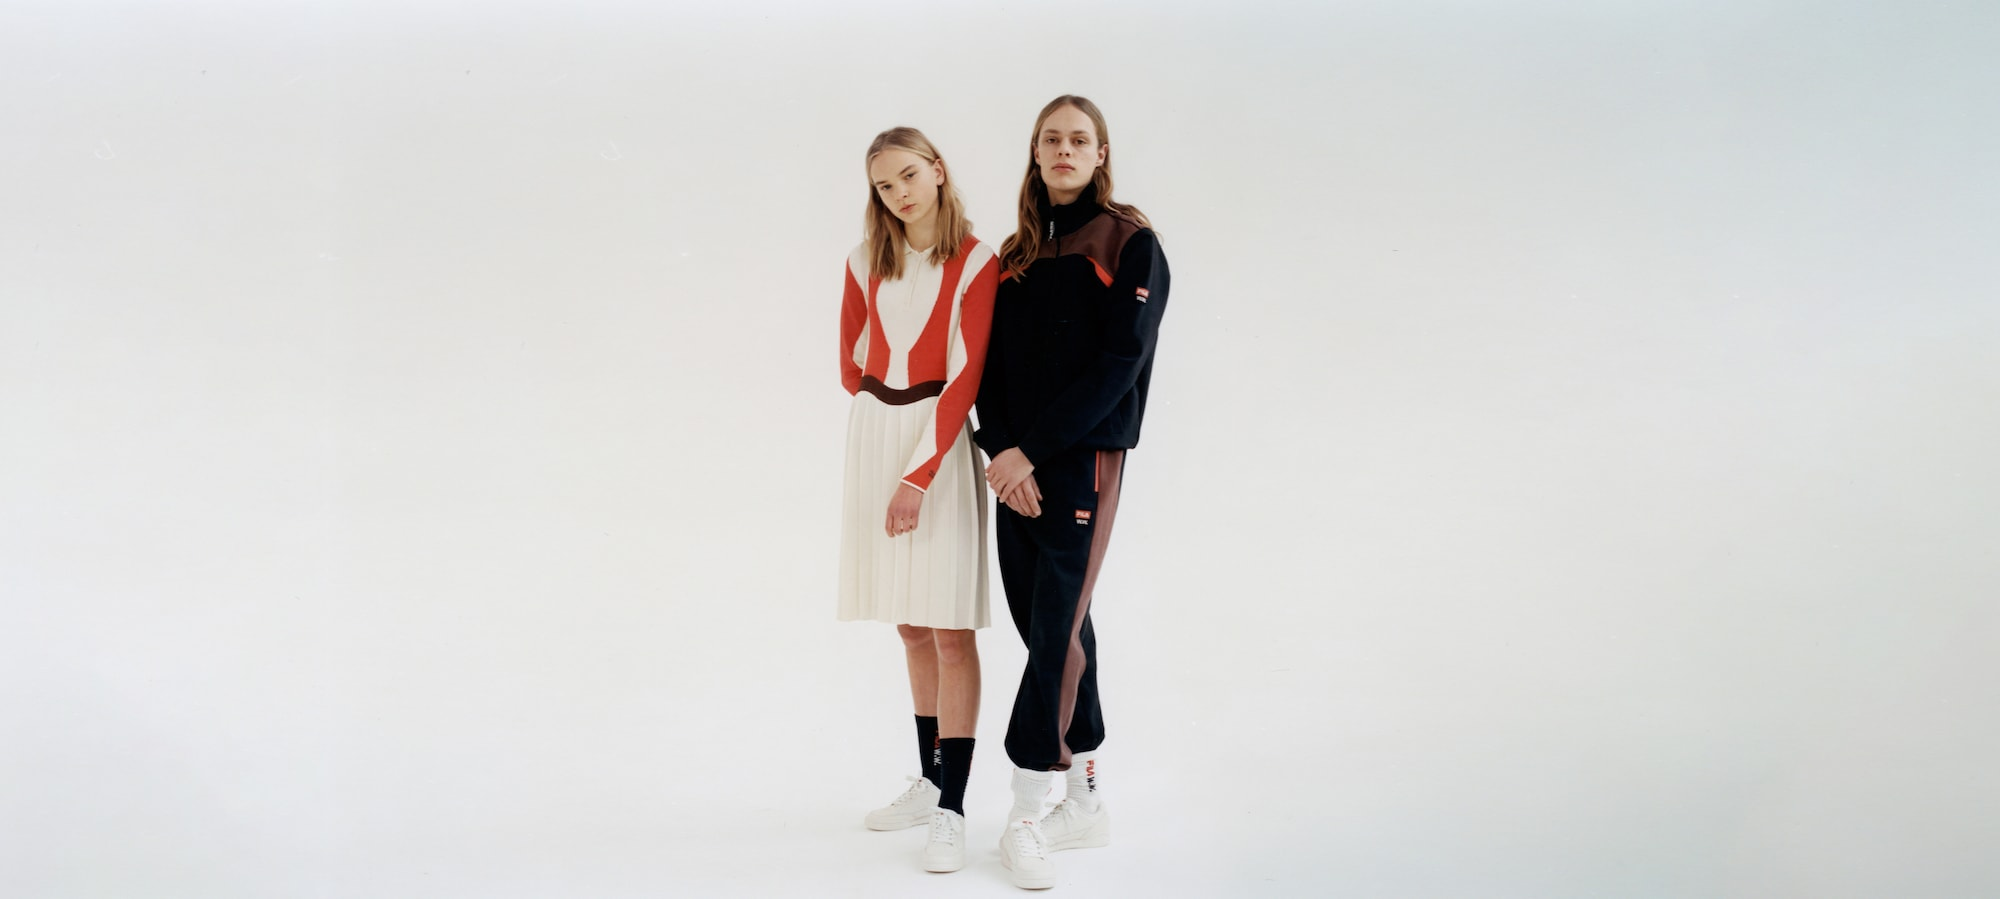 Fila and Wood Wood have teamed up for doubles Fila by Wood Wood